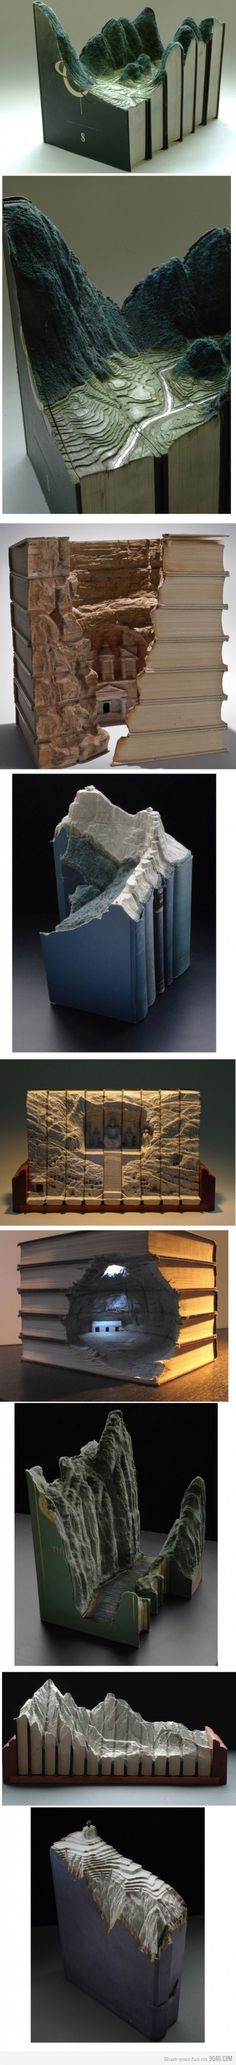 Landscapes and Books